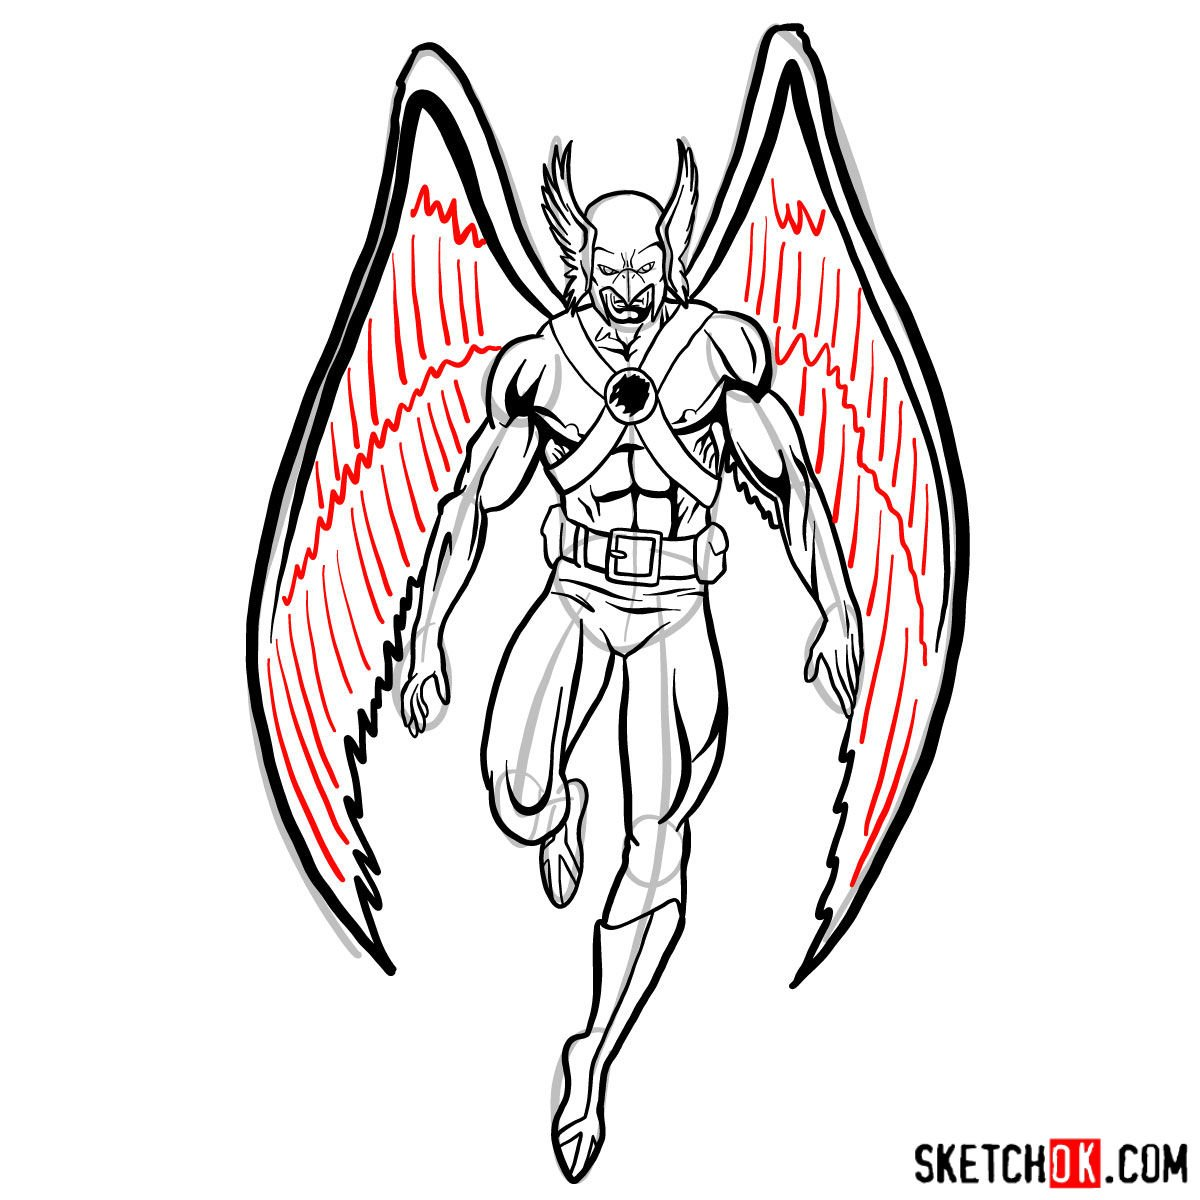 How to draw Hawkman from DC Comics - step 15